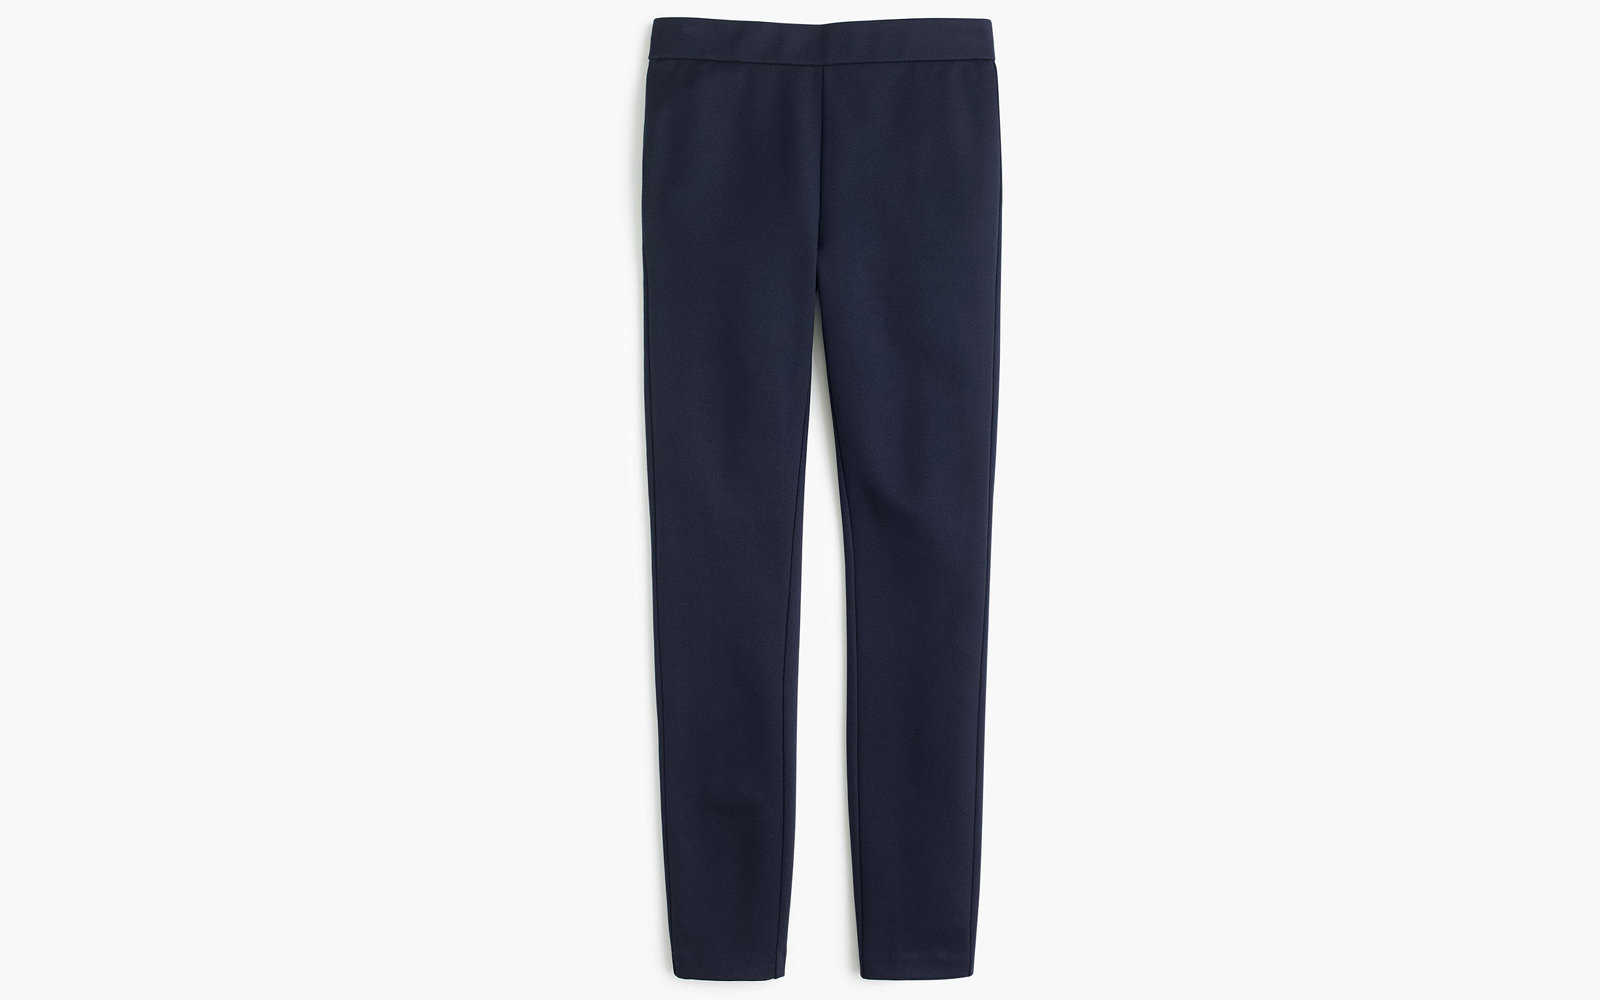 J.Crew Any Day Pant in Navy